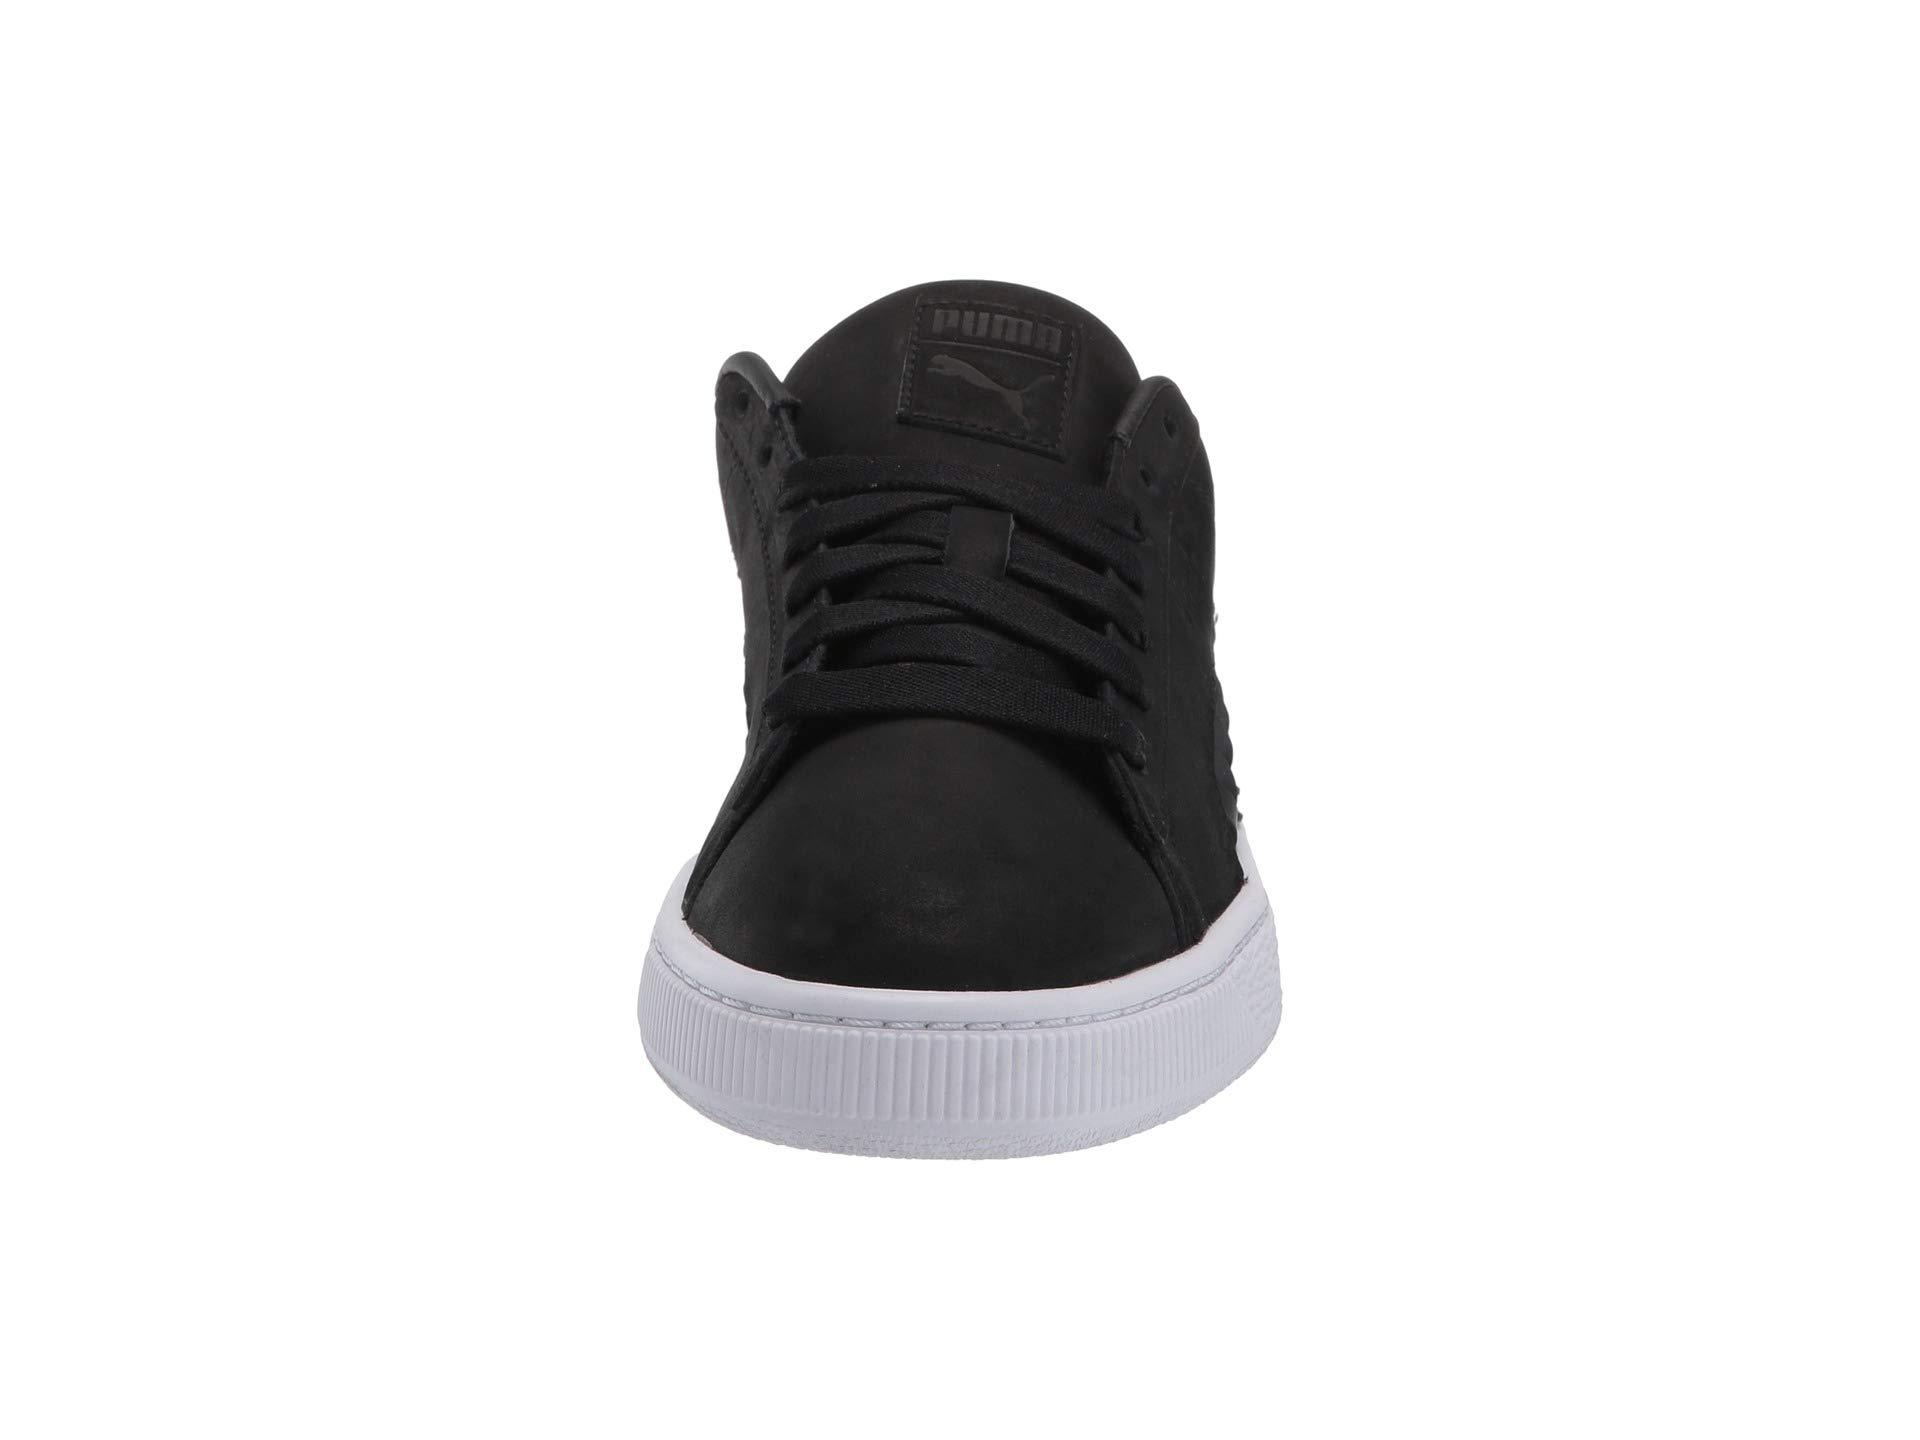 2a252dede02 Lyst - PUMA Basket Crafted (toast gum) Women s Shoes in Black